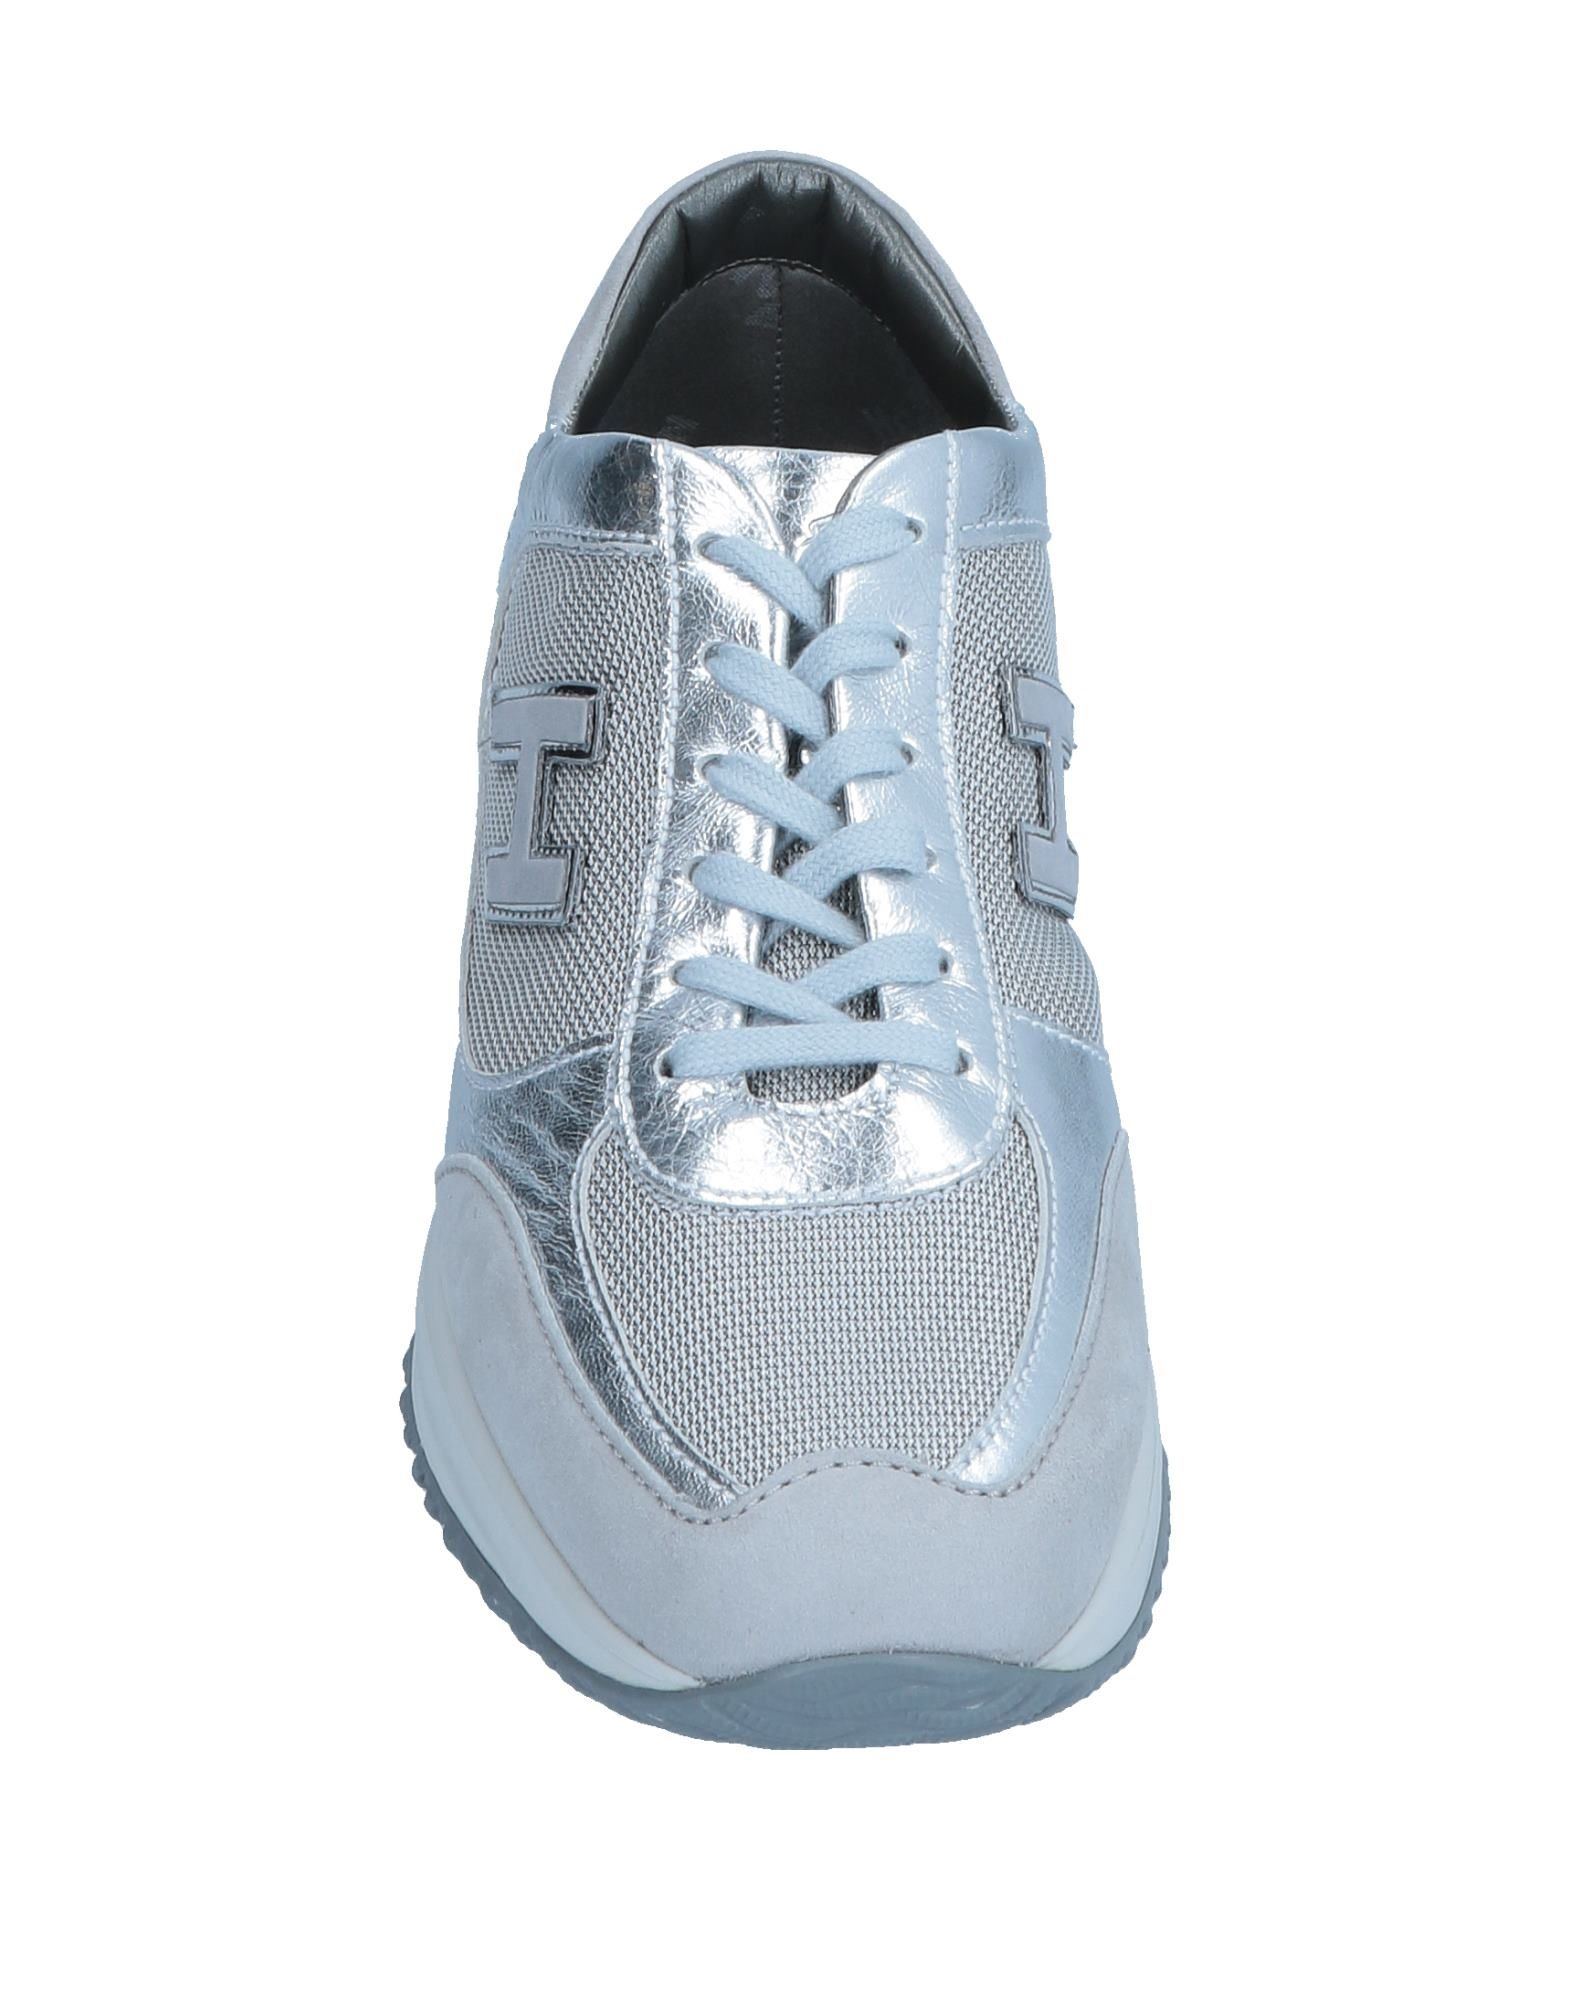 Hogan Sneakers Sneakers Sneakers - Women Hogan Sneakers online on  United Kingdom - 11556625CD 2e24c7